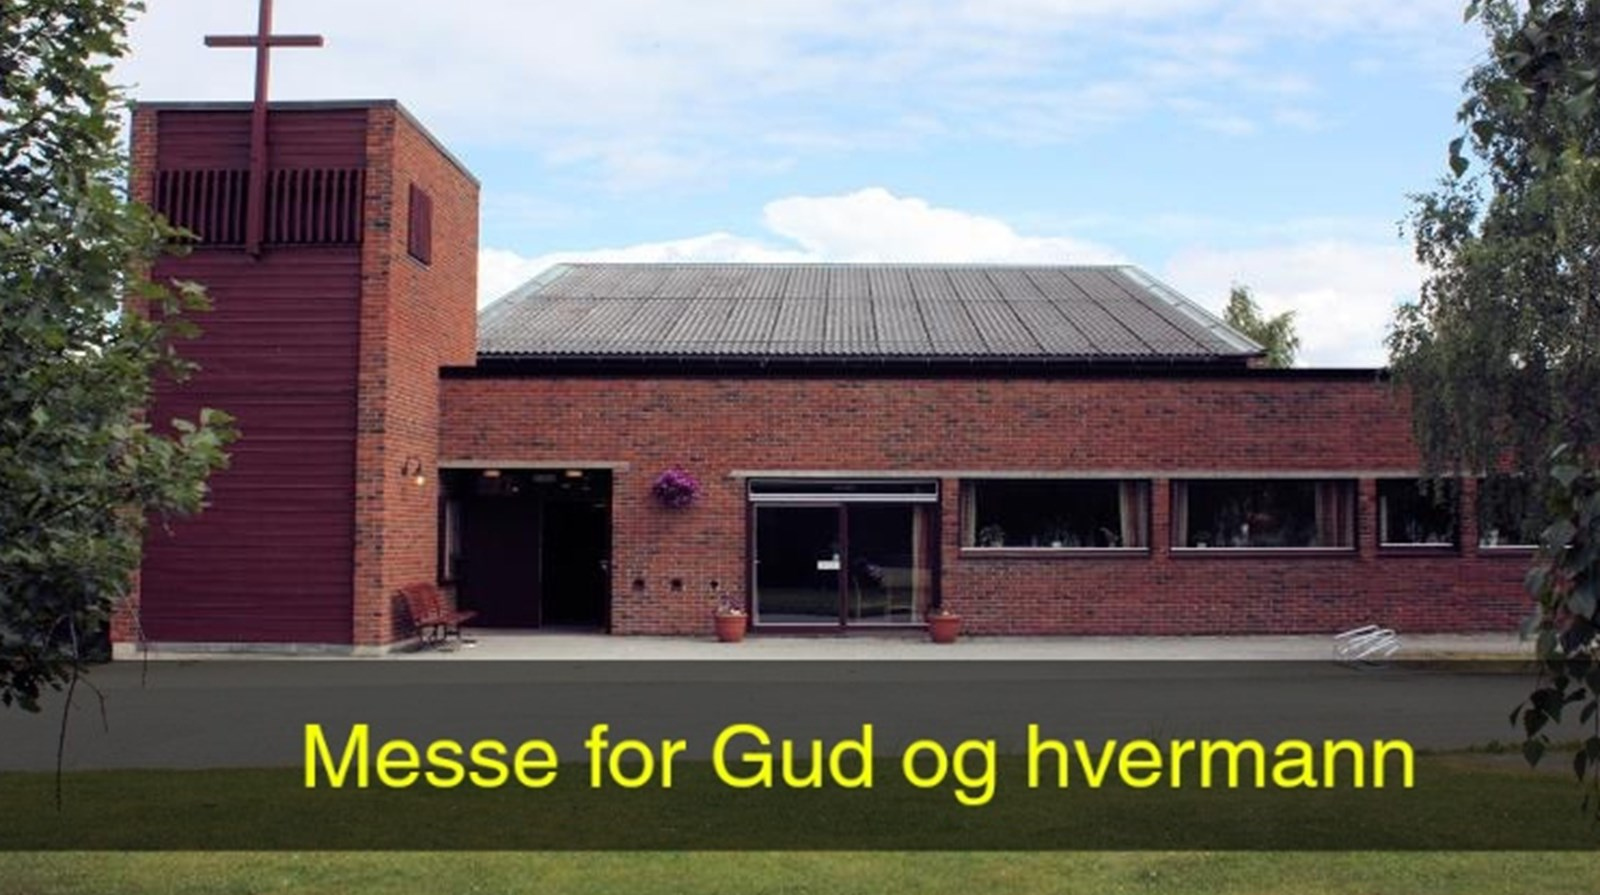 Messse for Gud og hvermann - Strindheim menighet